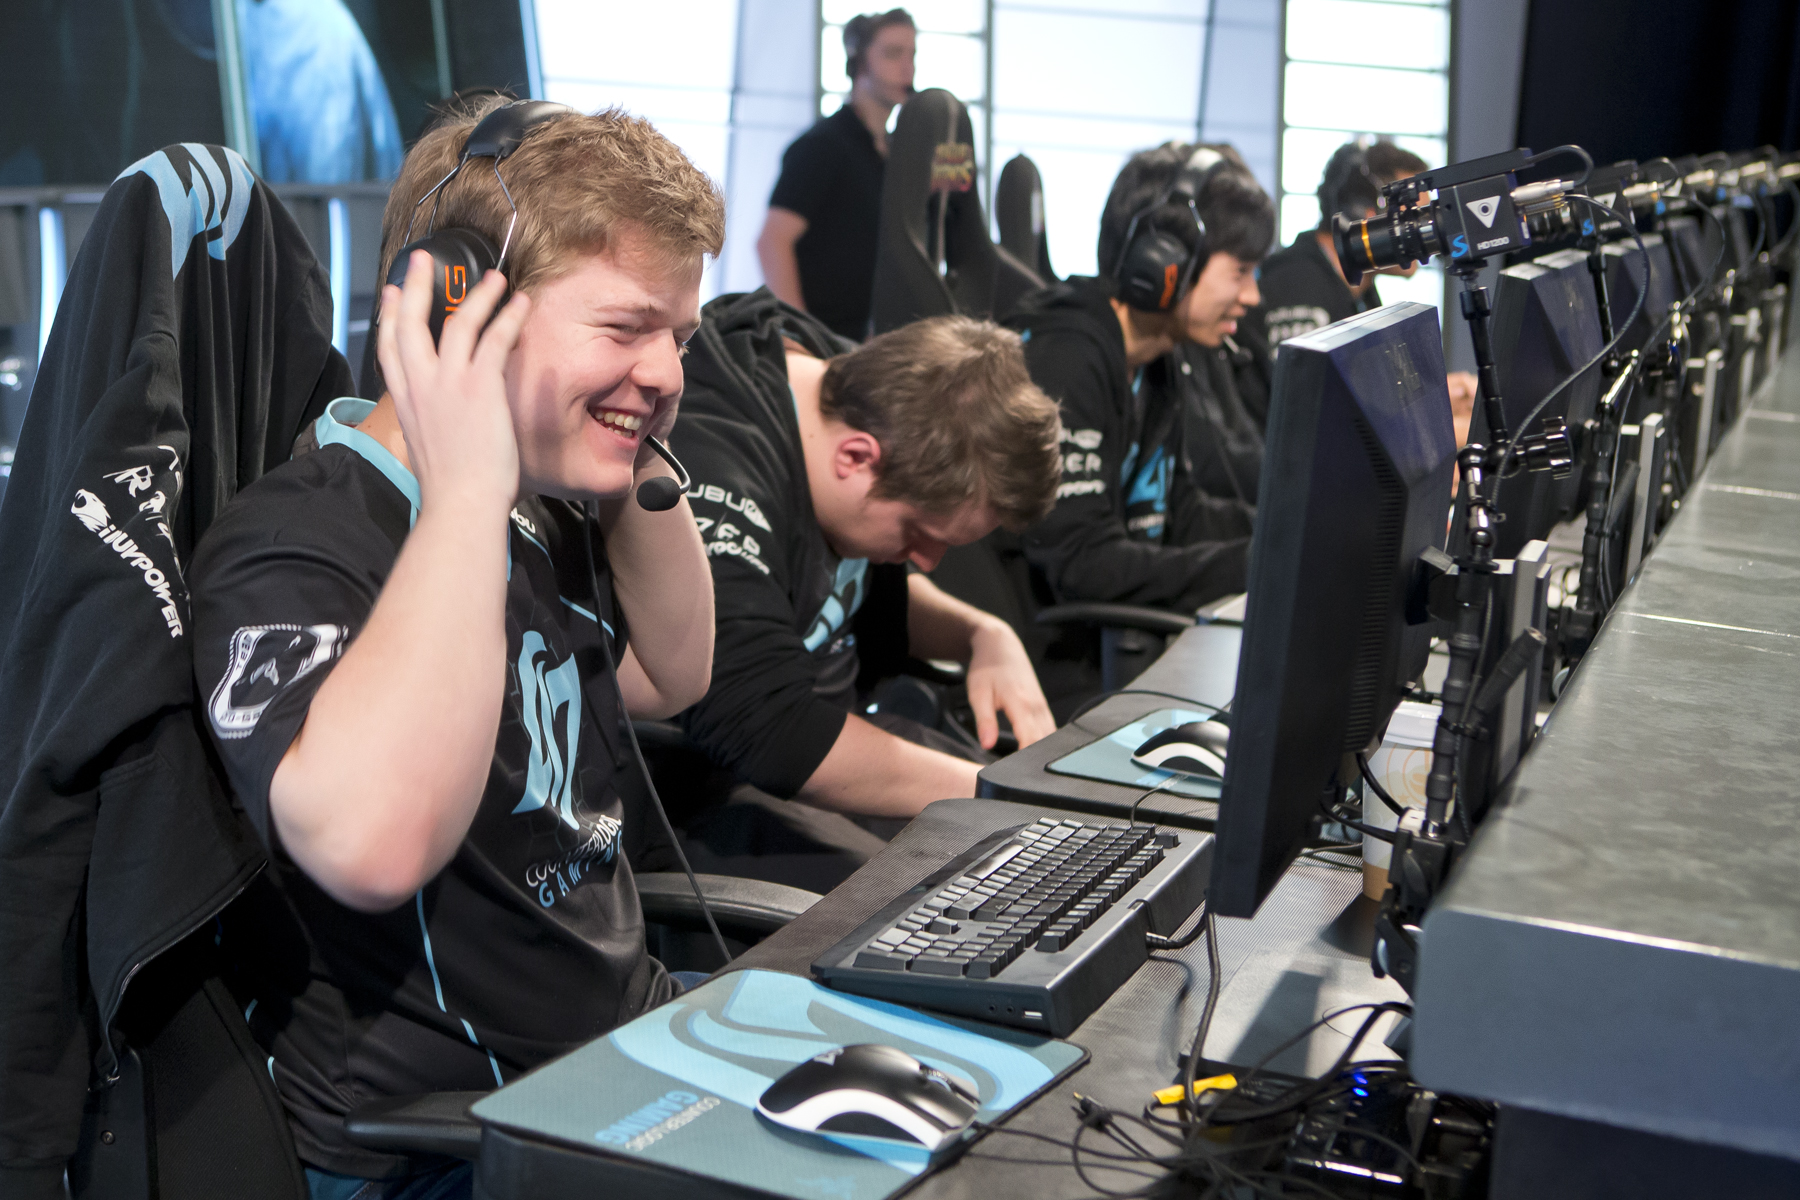 Nien, the top laner for CLG retired at the end of Spring Split 2014 due to heavy criticism from the community.  source